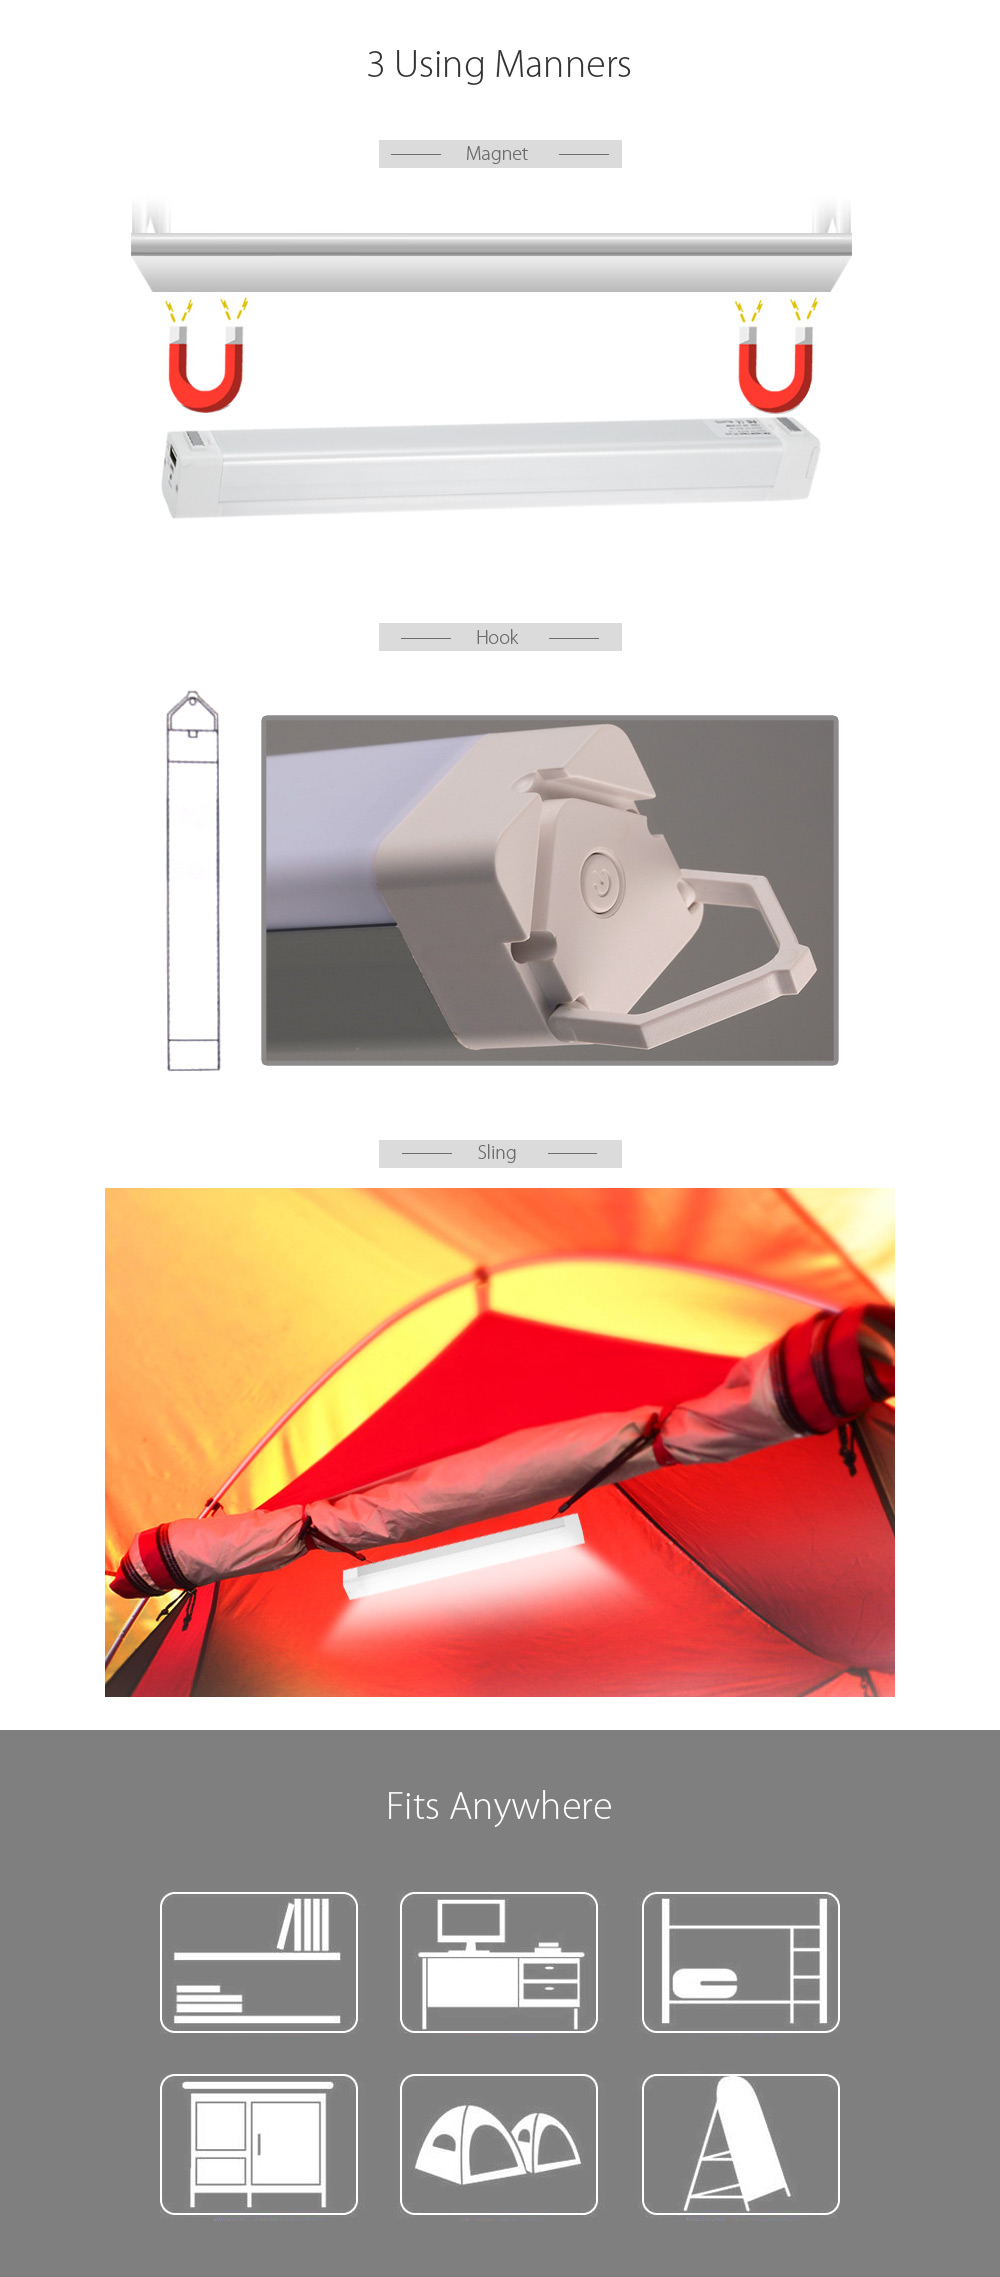 8W USB Rechargeable LED Tube Light with Magnet Hook Sling